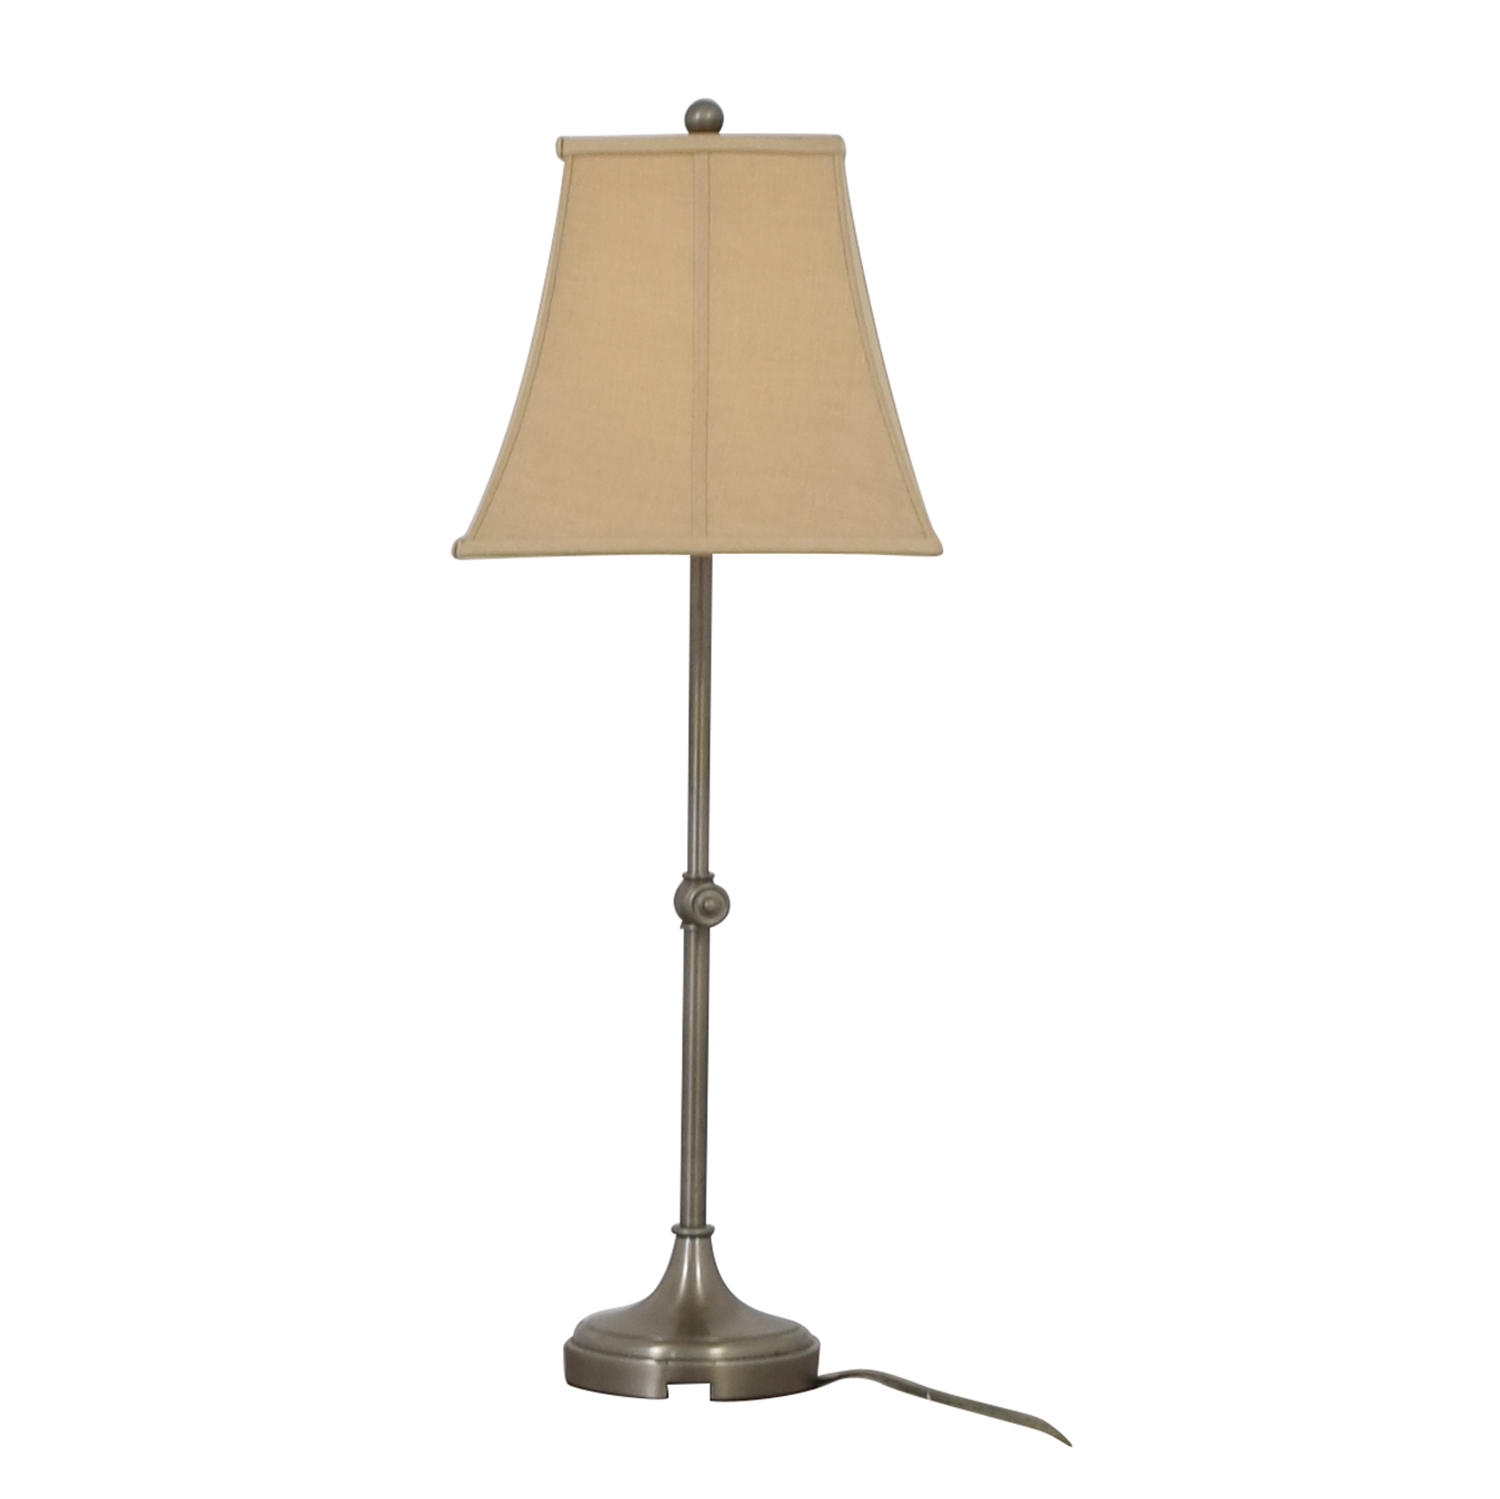 buy Pottery Barn Pottery Barn Table Lamp online